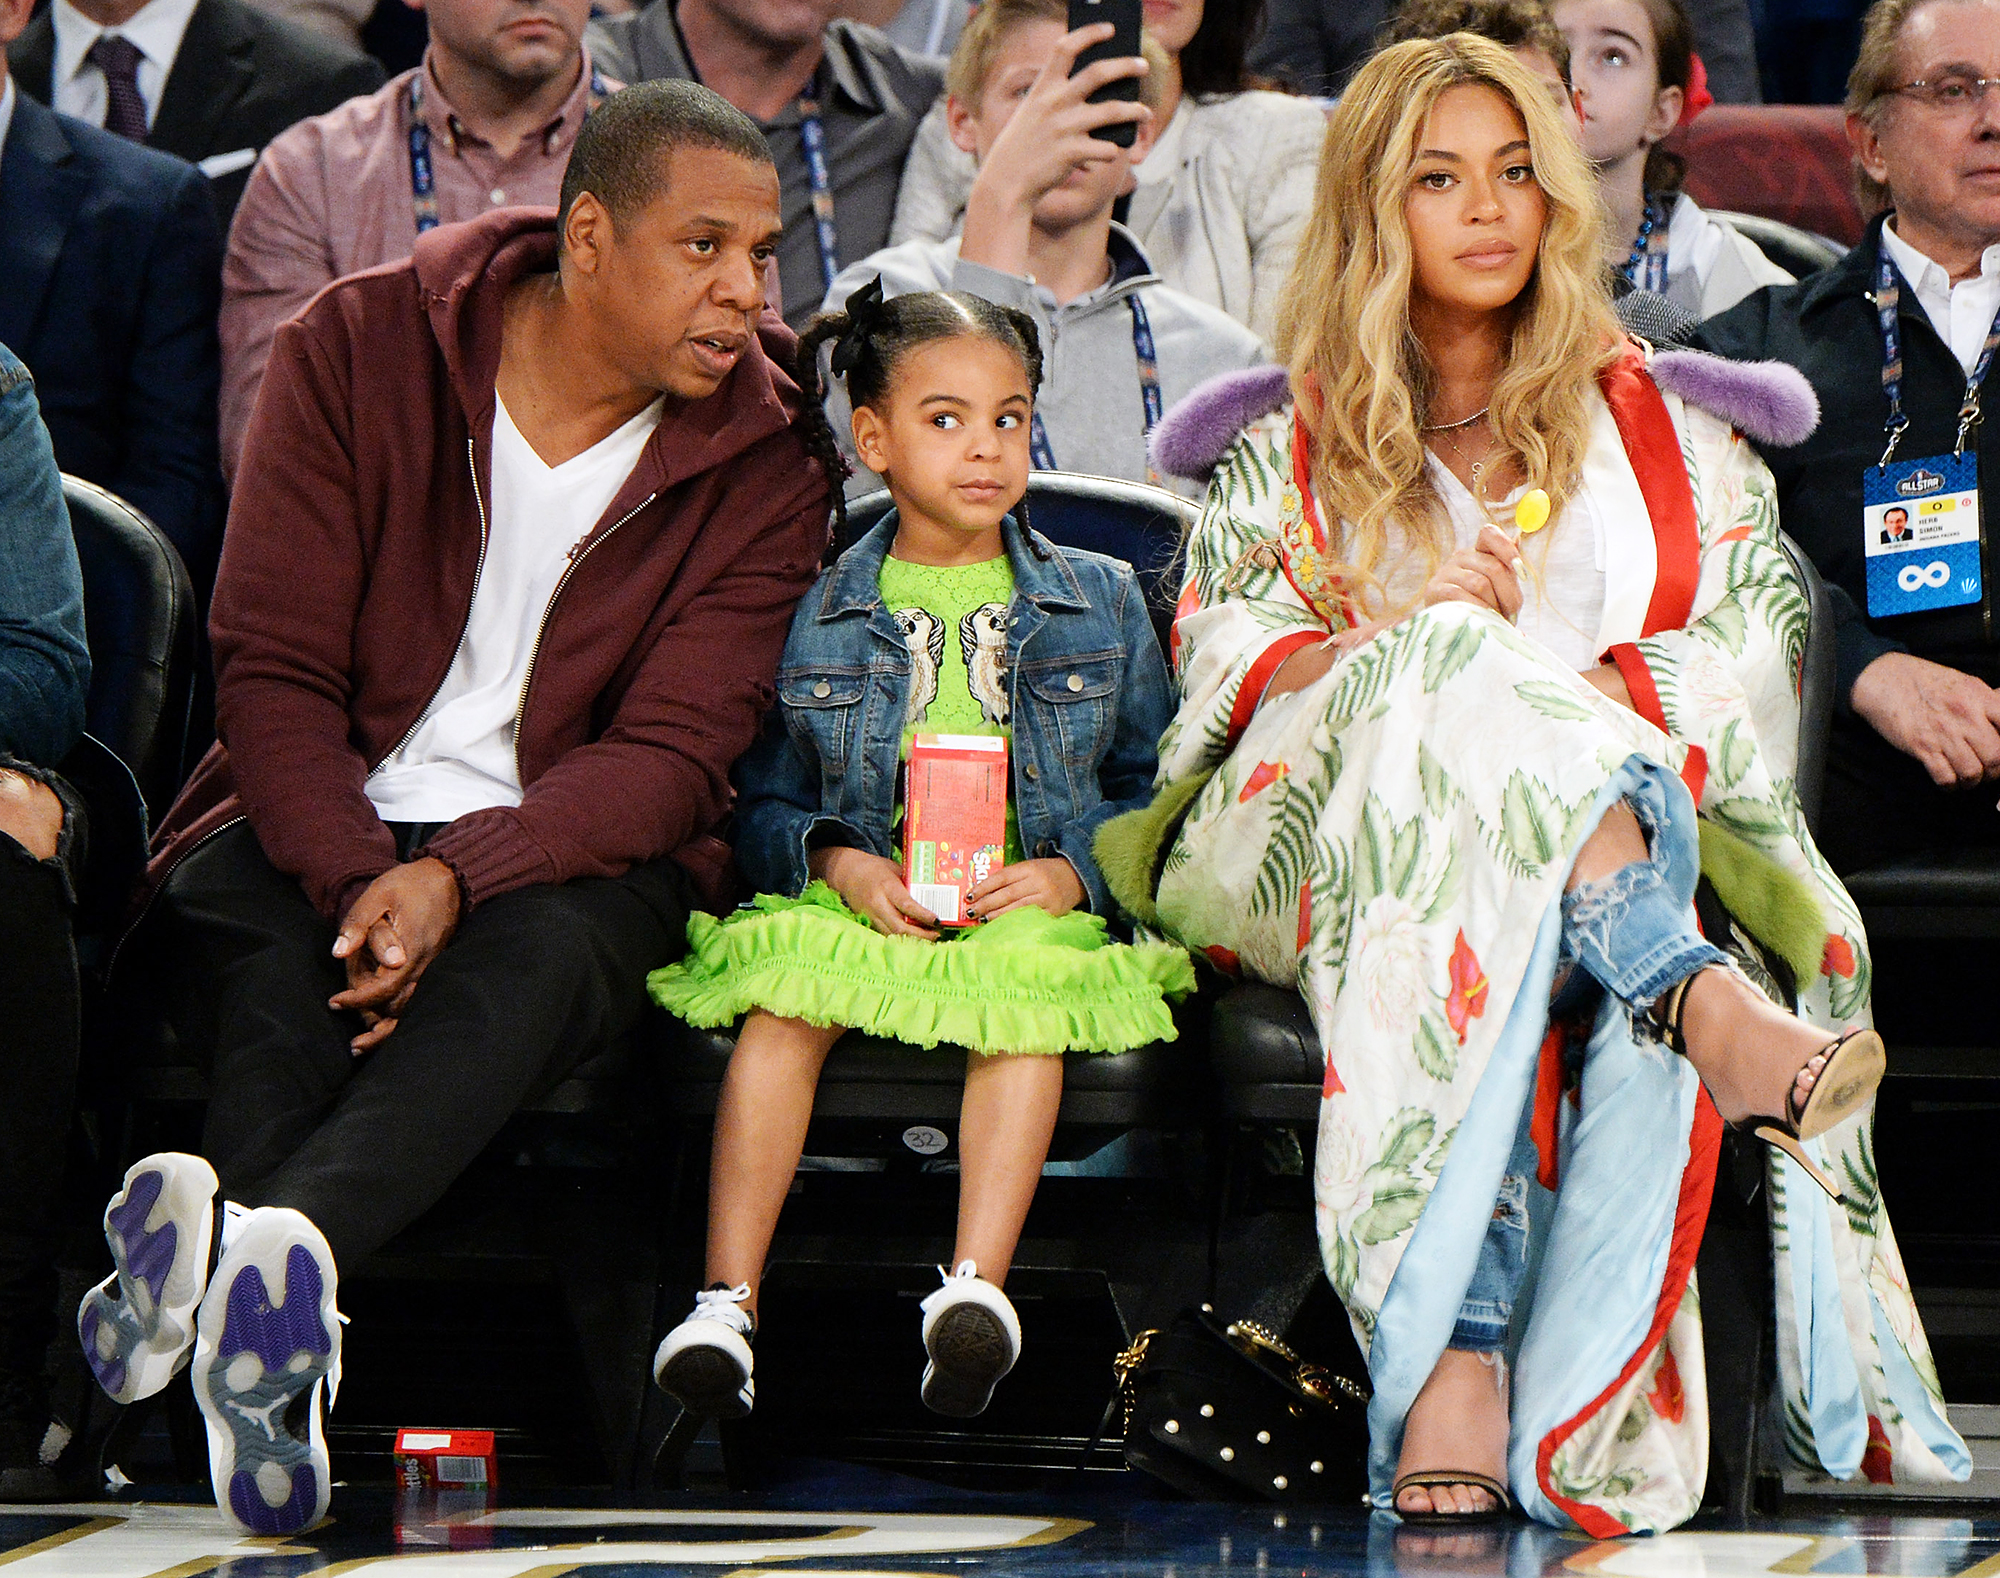 Blue Ivy embarrassed by Beyonce and Jay-Z's provocative on-stage antics